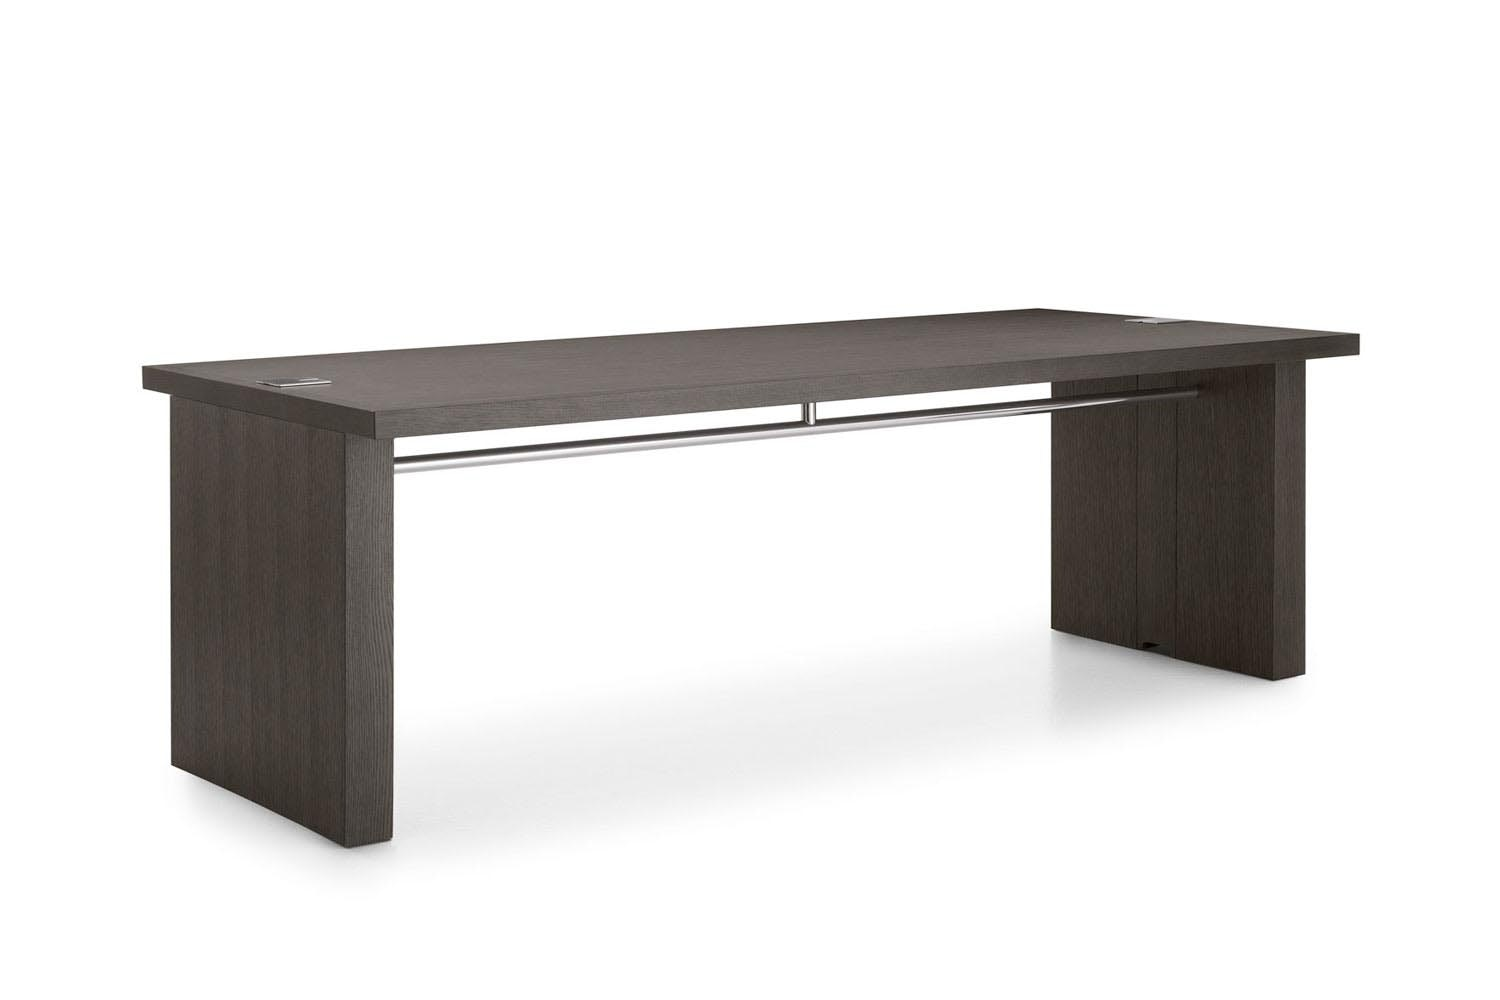 AC Executive - Tables by Antonio Citterio for B&B Italia Project